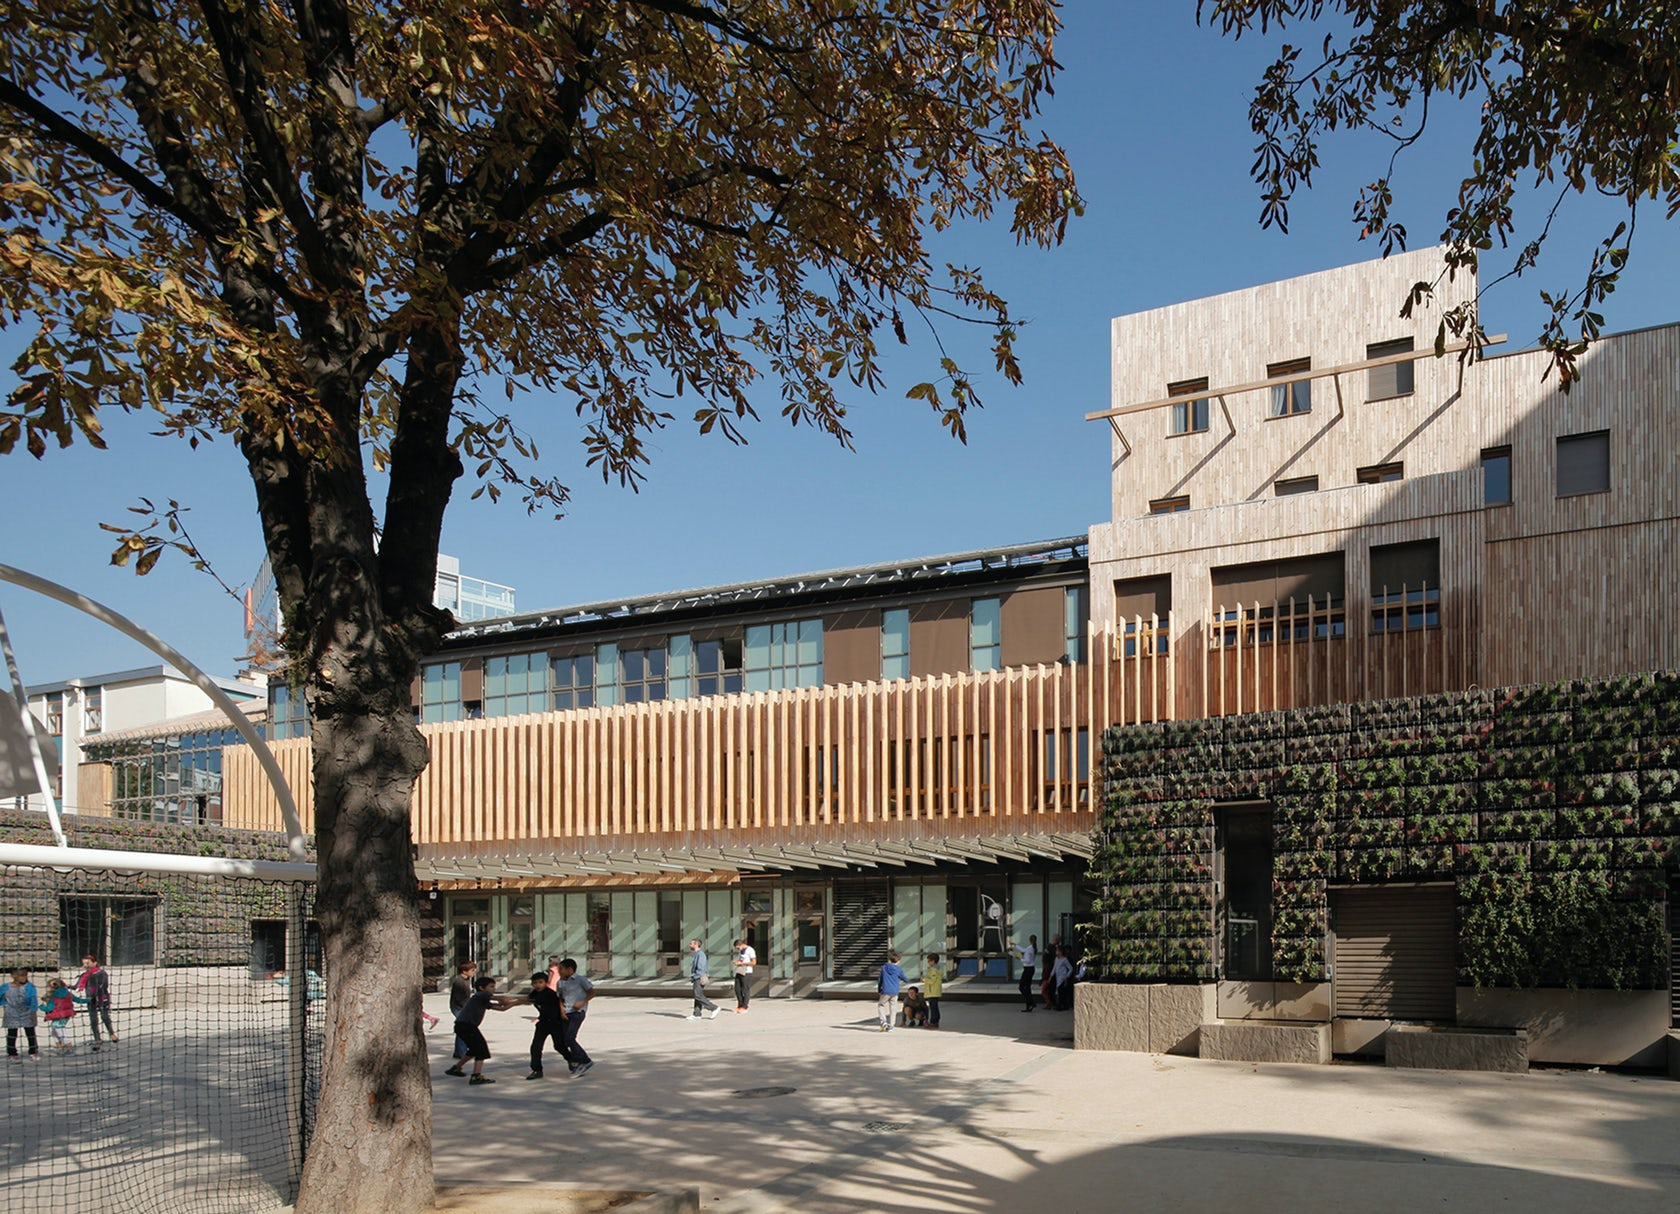 Eco nursery primary school architizer - Ecole olivier de serres ...